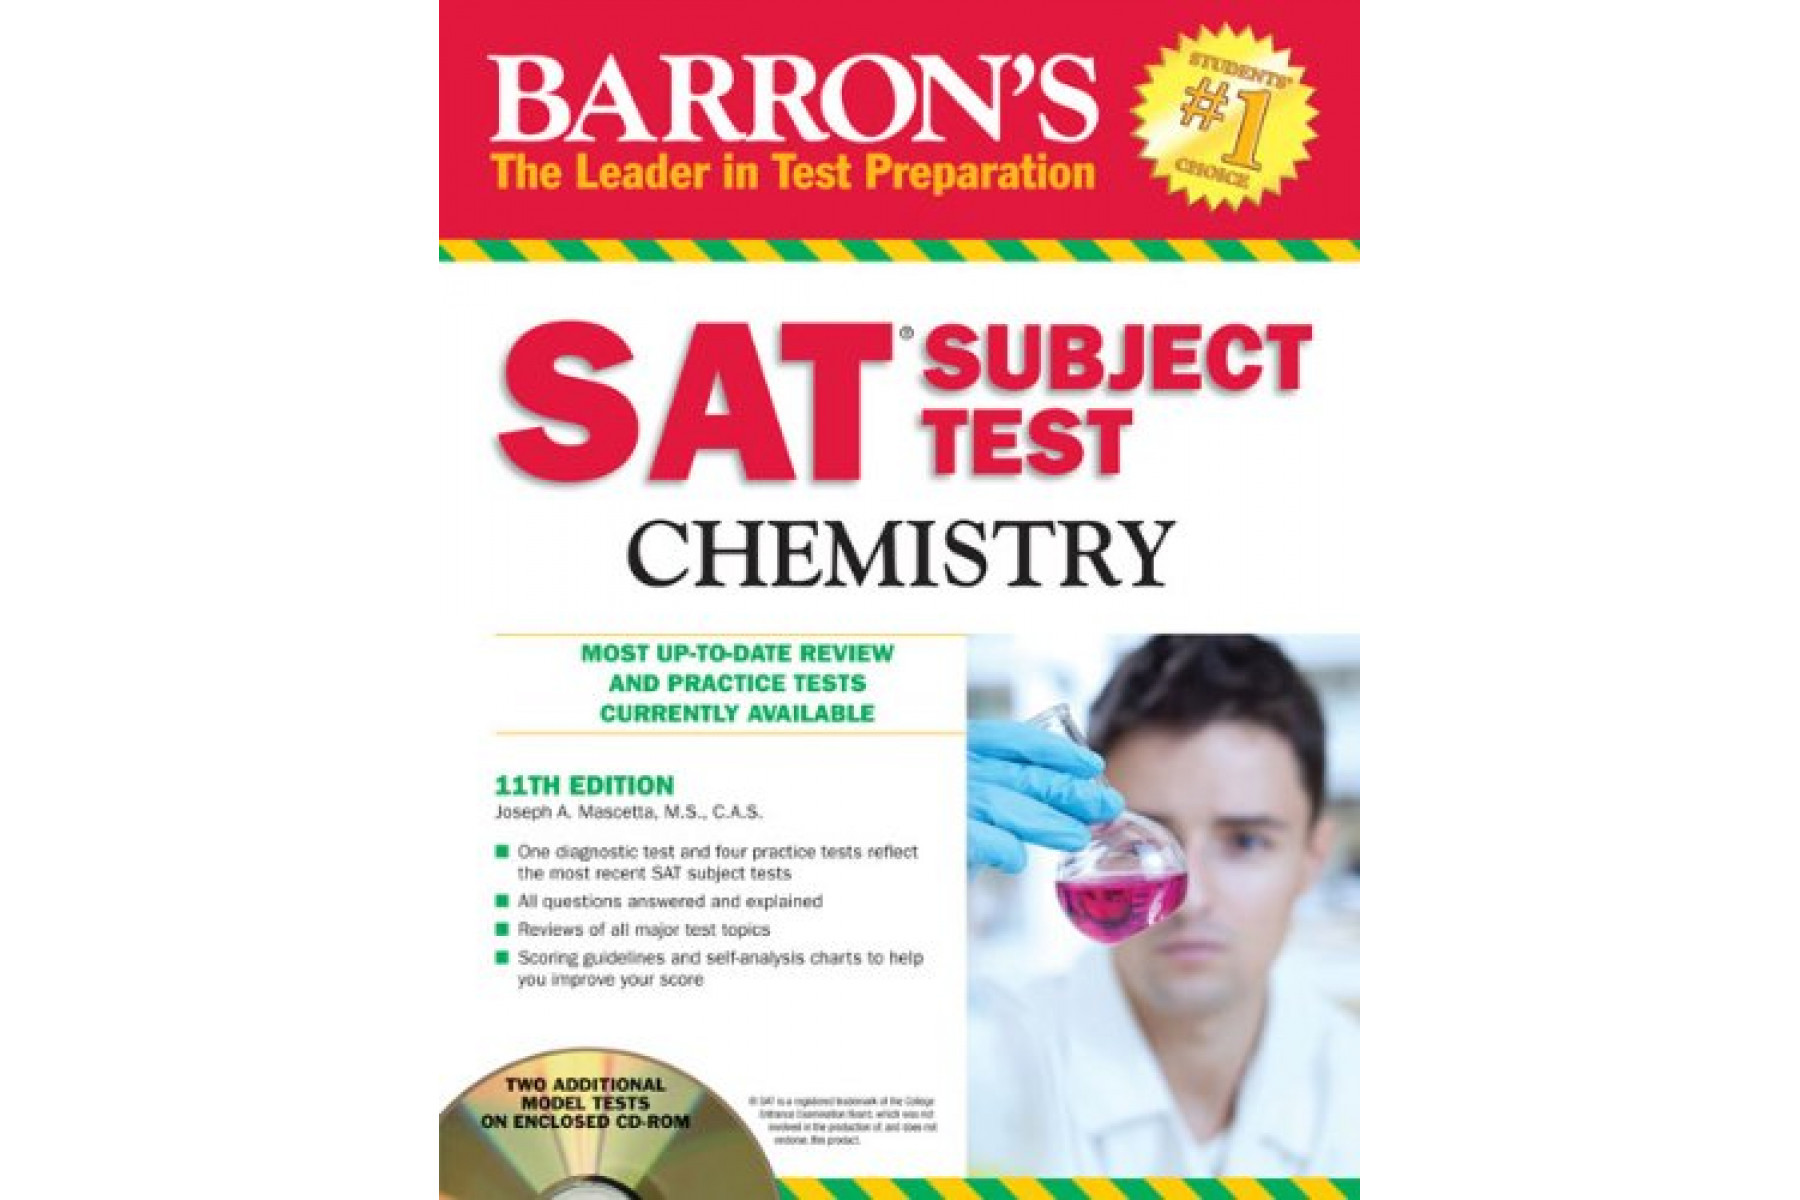 SAT Subject Test Chemistry (Barron's SAT Subject Test Chemistry (W/CD))